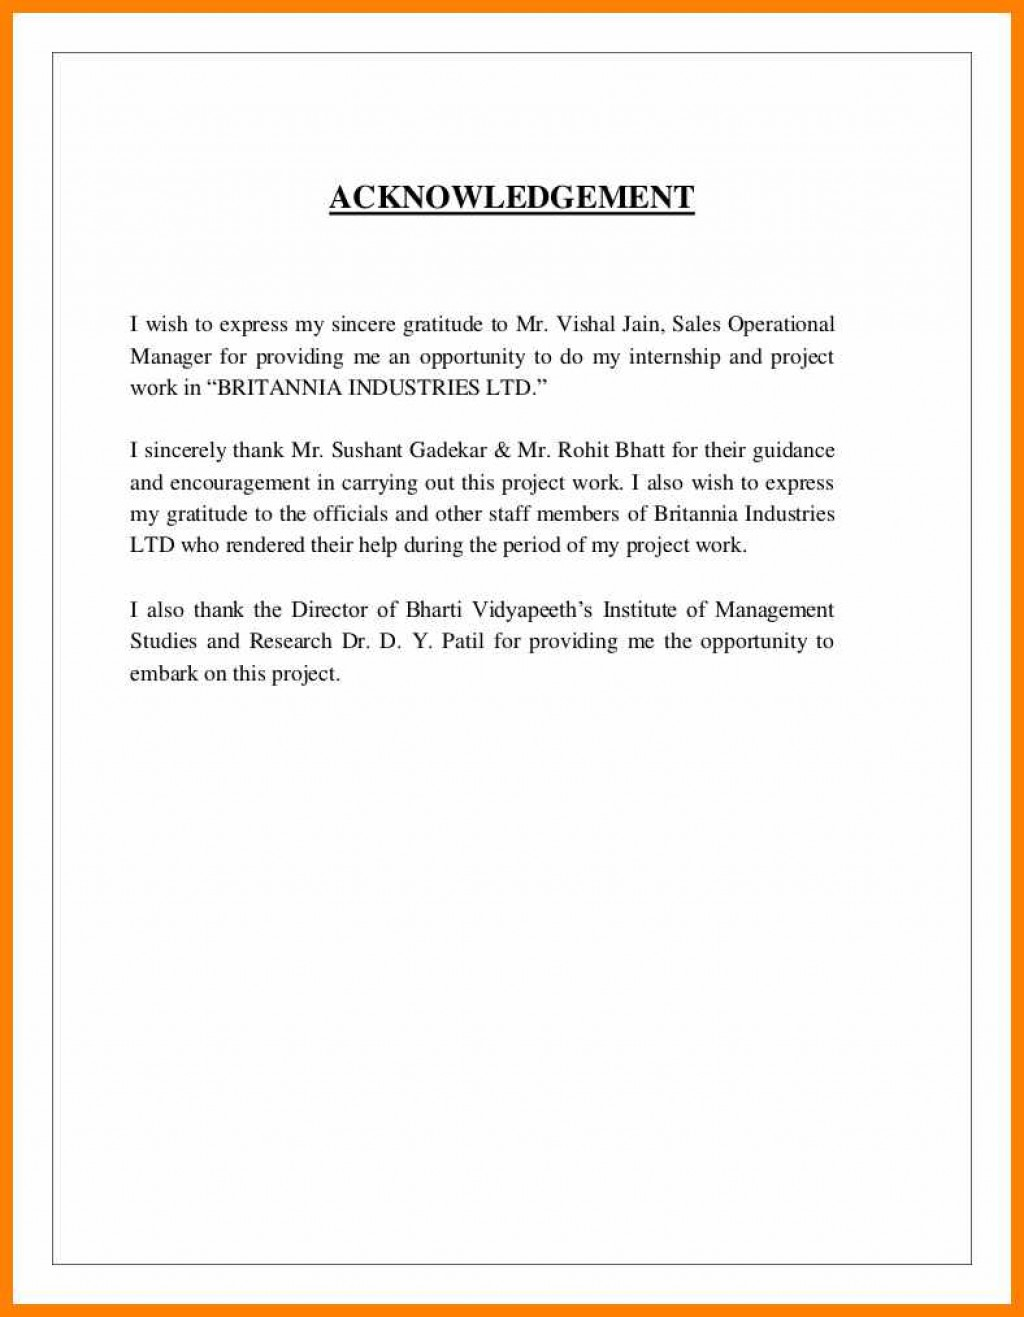 003 Research Paper Acknowledgement For Definition Acknowledgment Examples Uncategorized Internship Report Essential Formidable Of In A Large